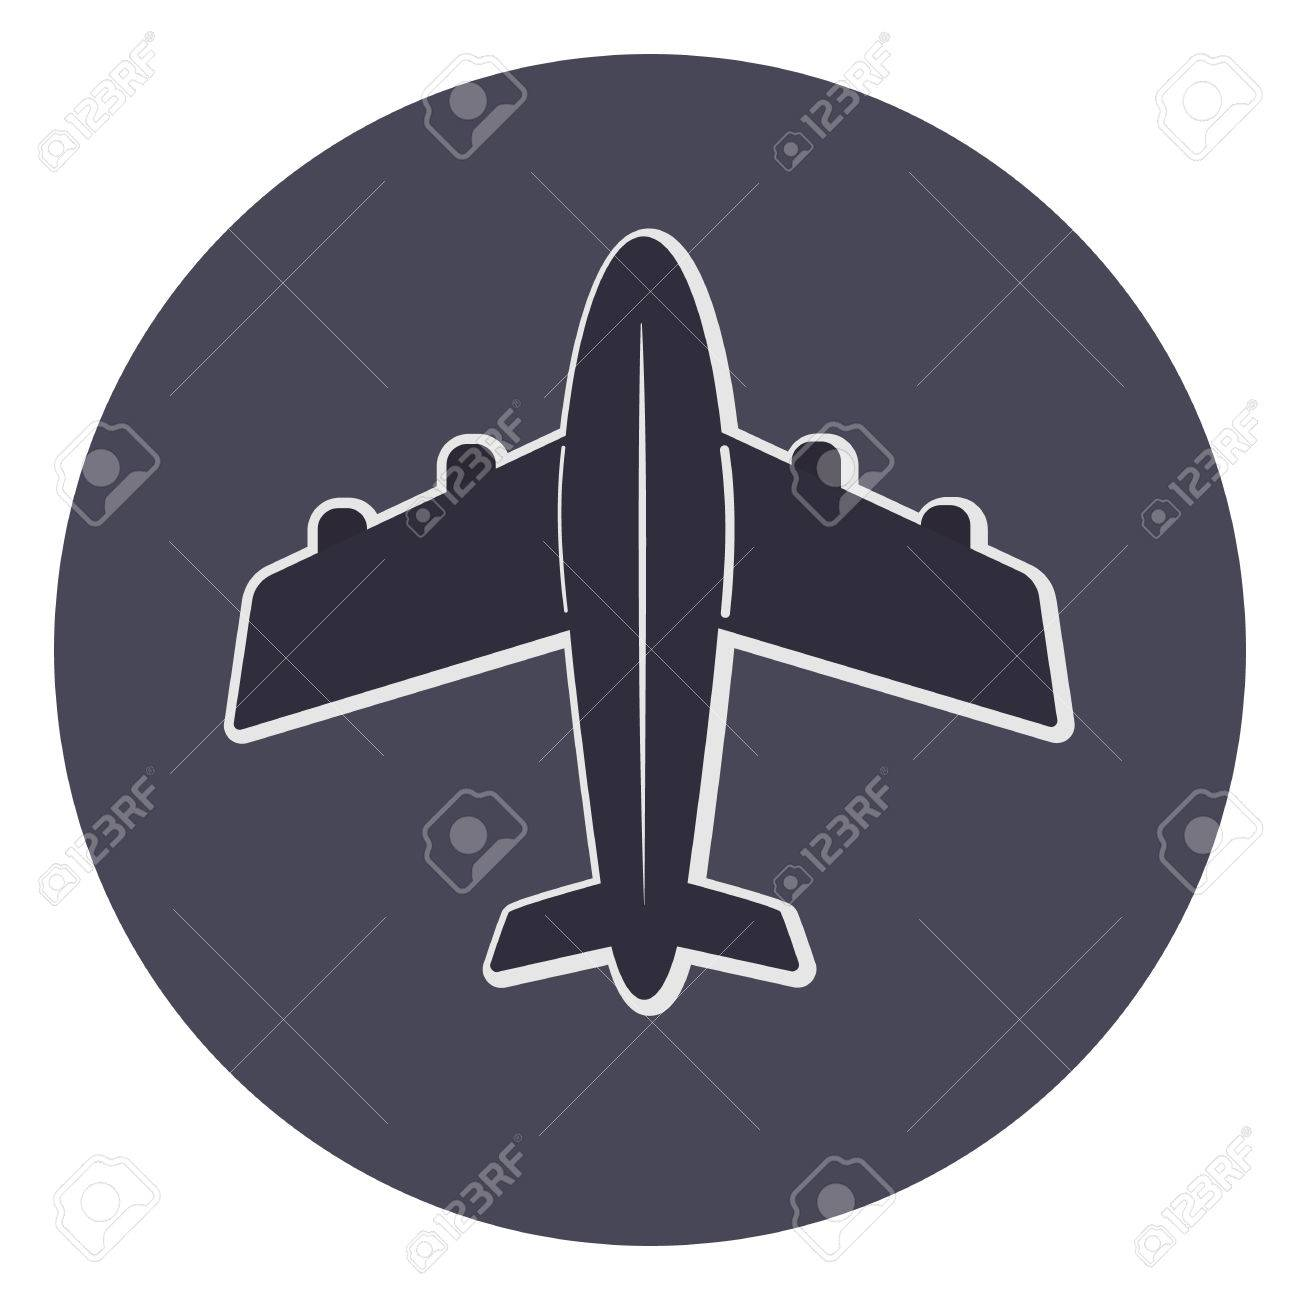 Dark Vector Plane Icon Top View With White Outline Cute Airplane